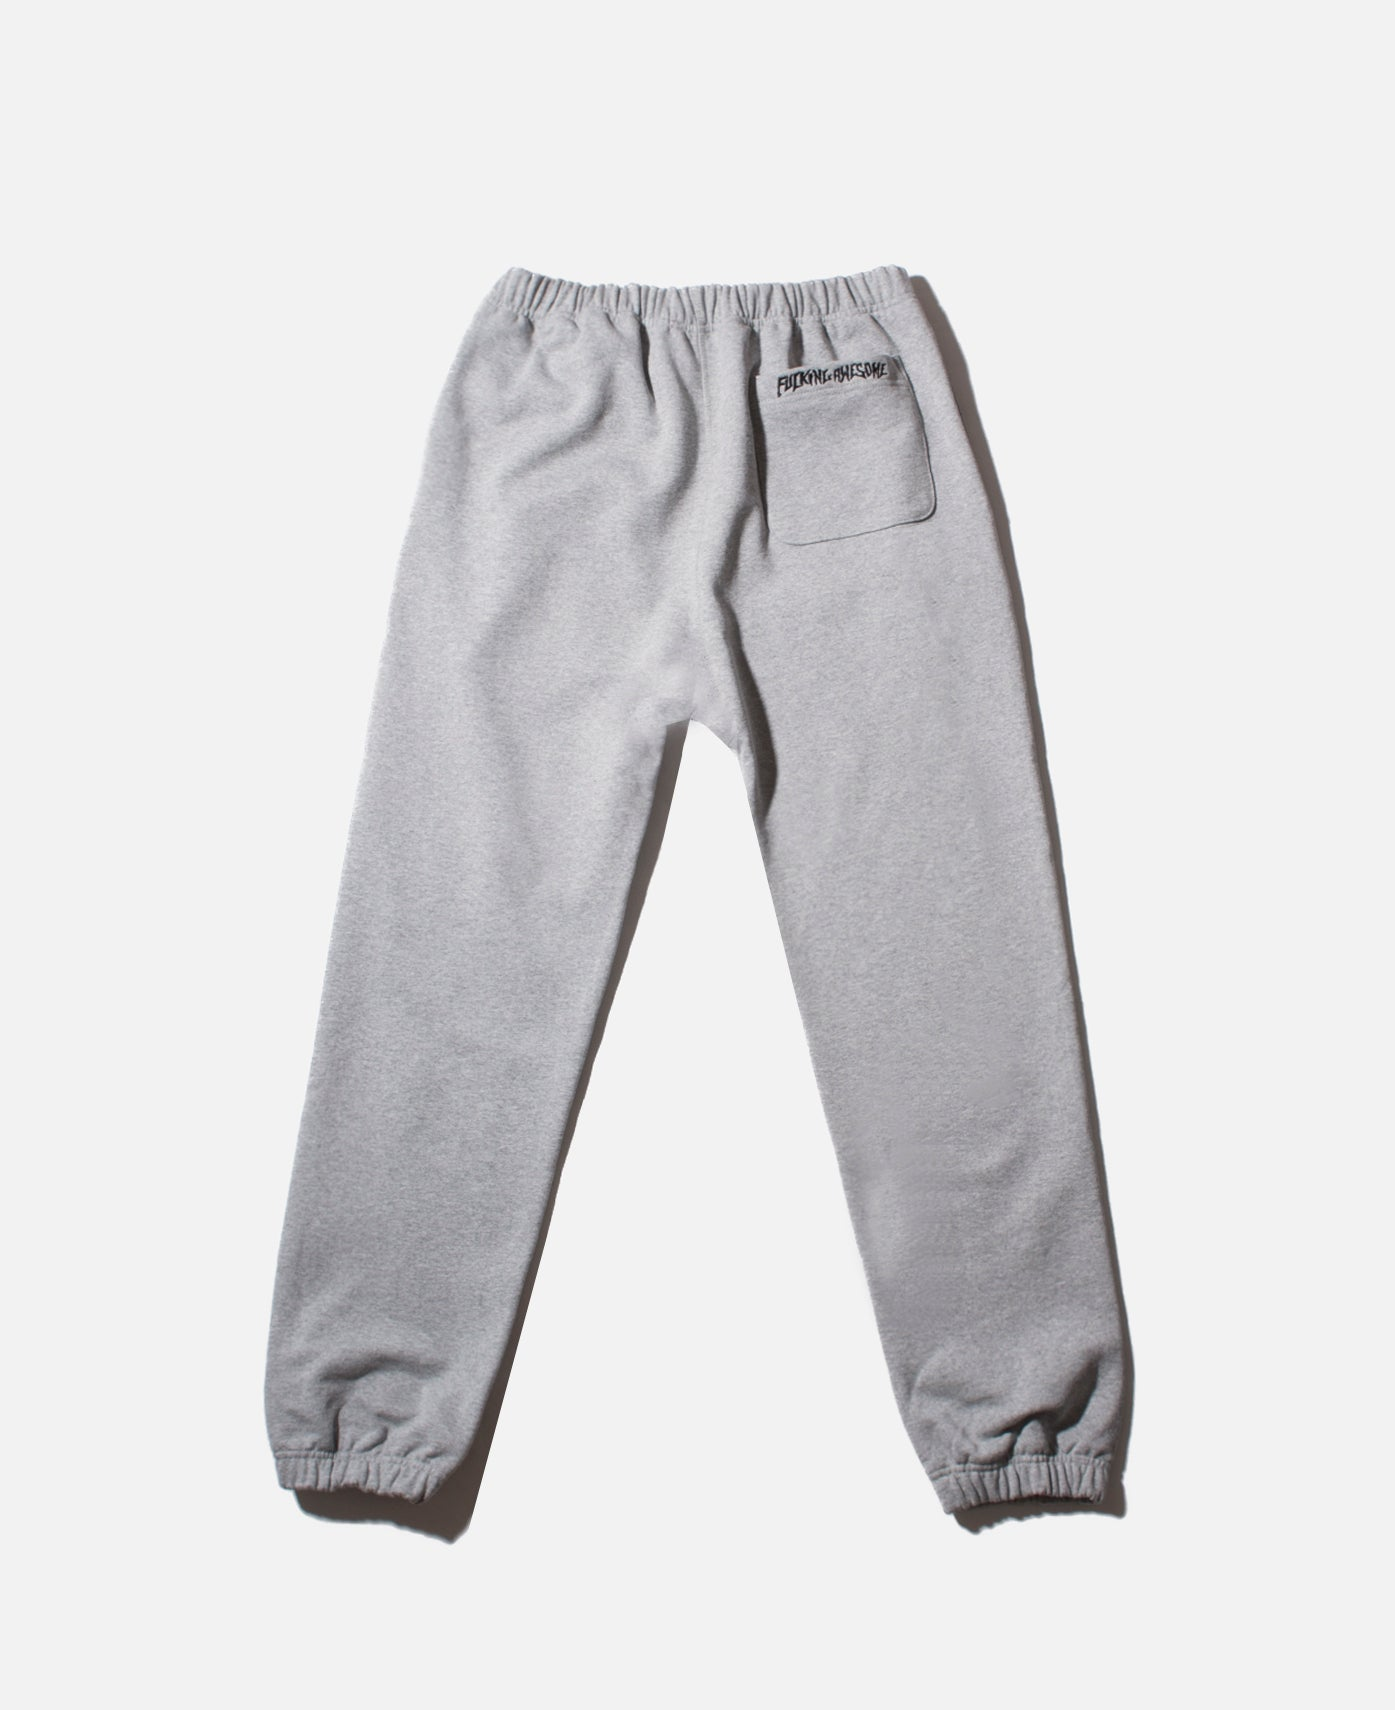 Lord Of Bombs Sweatpants